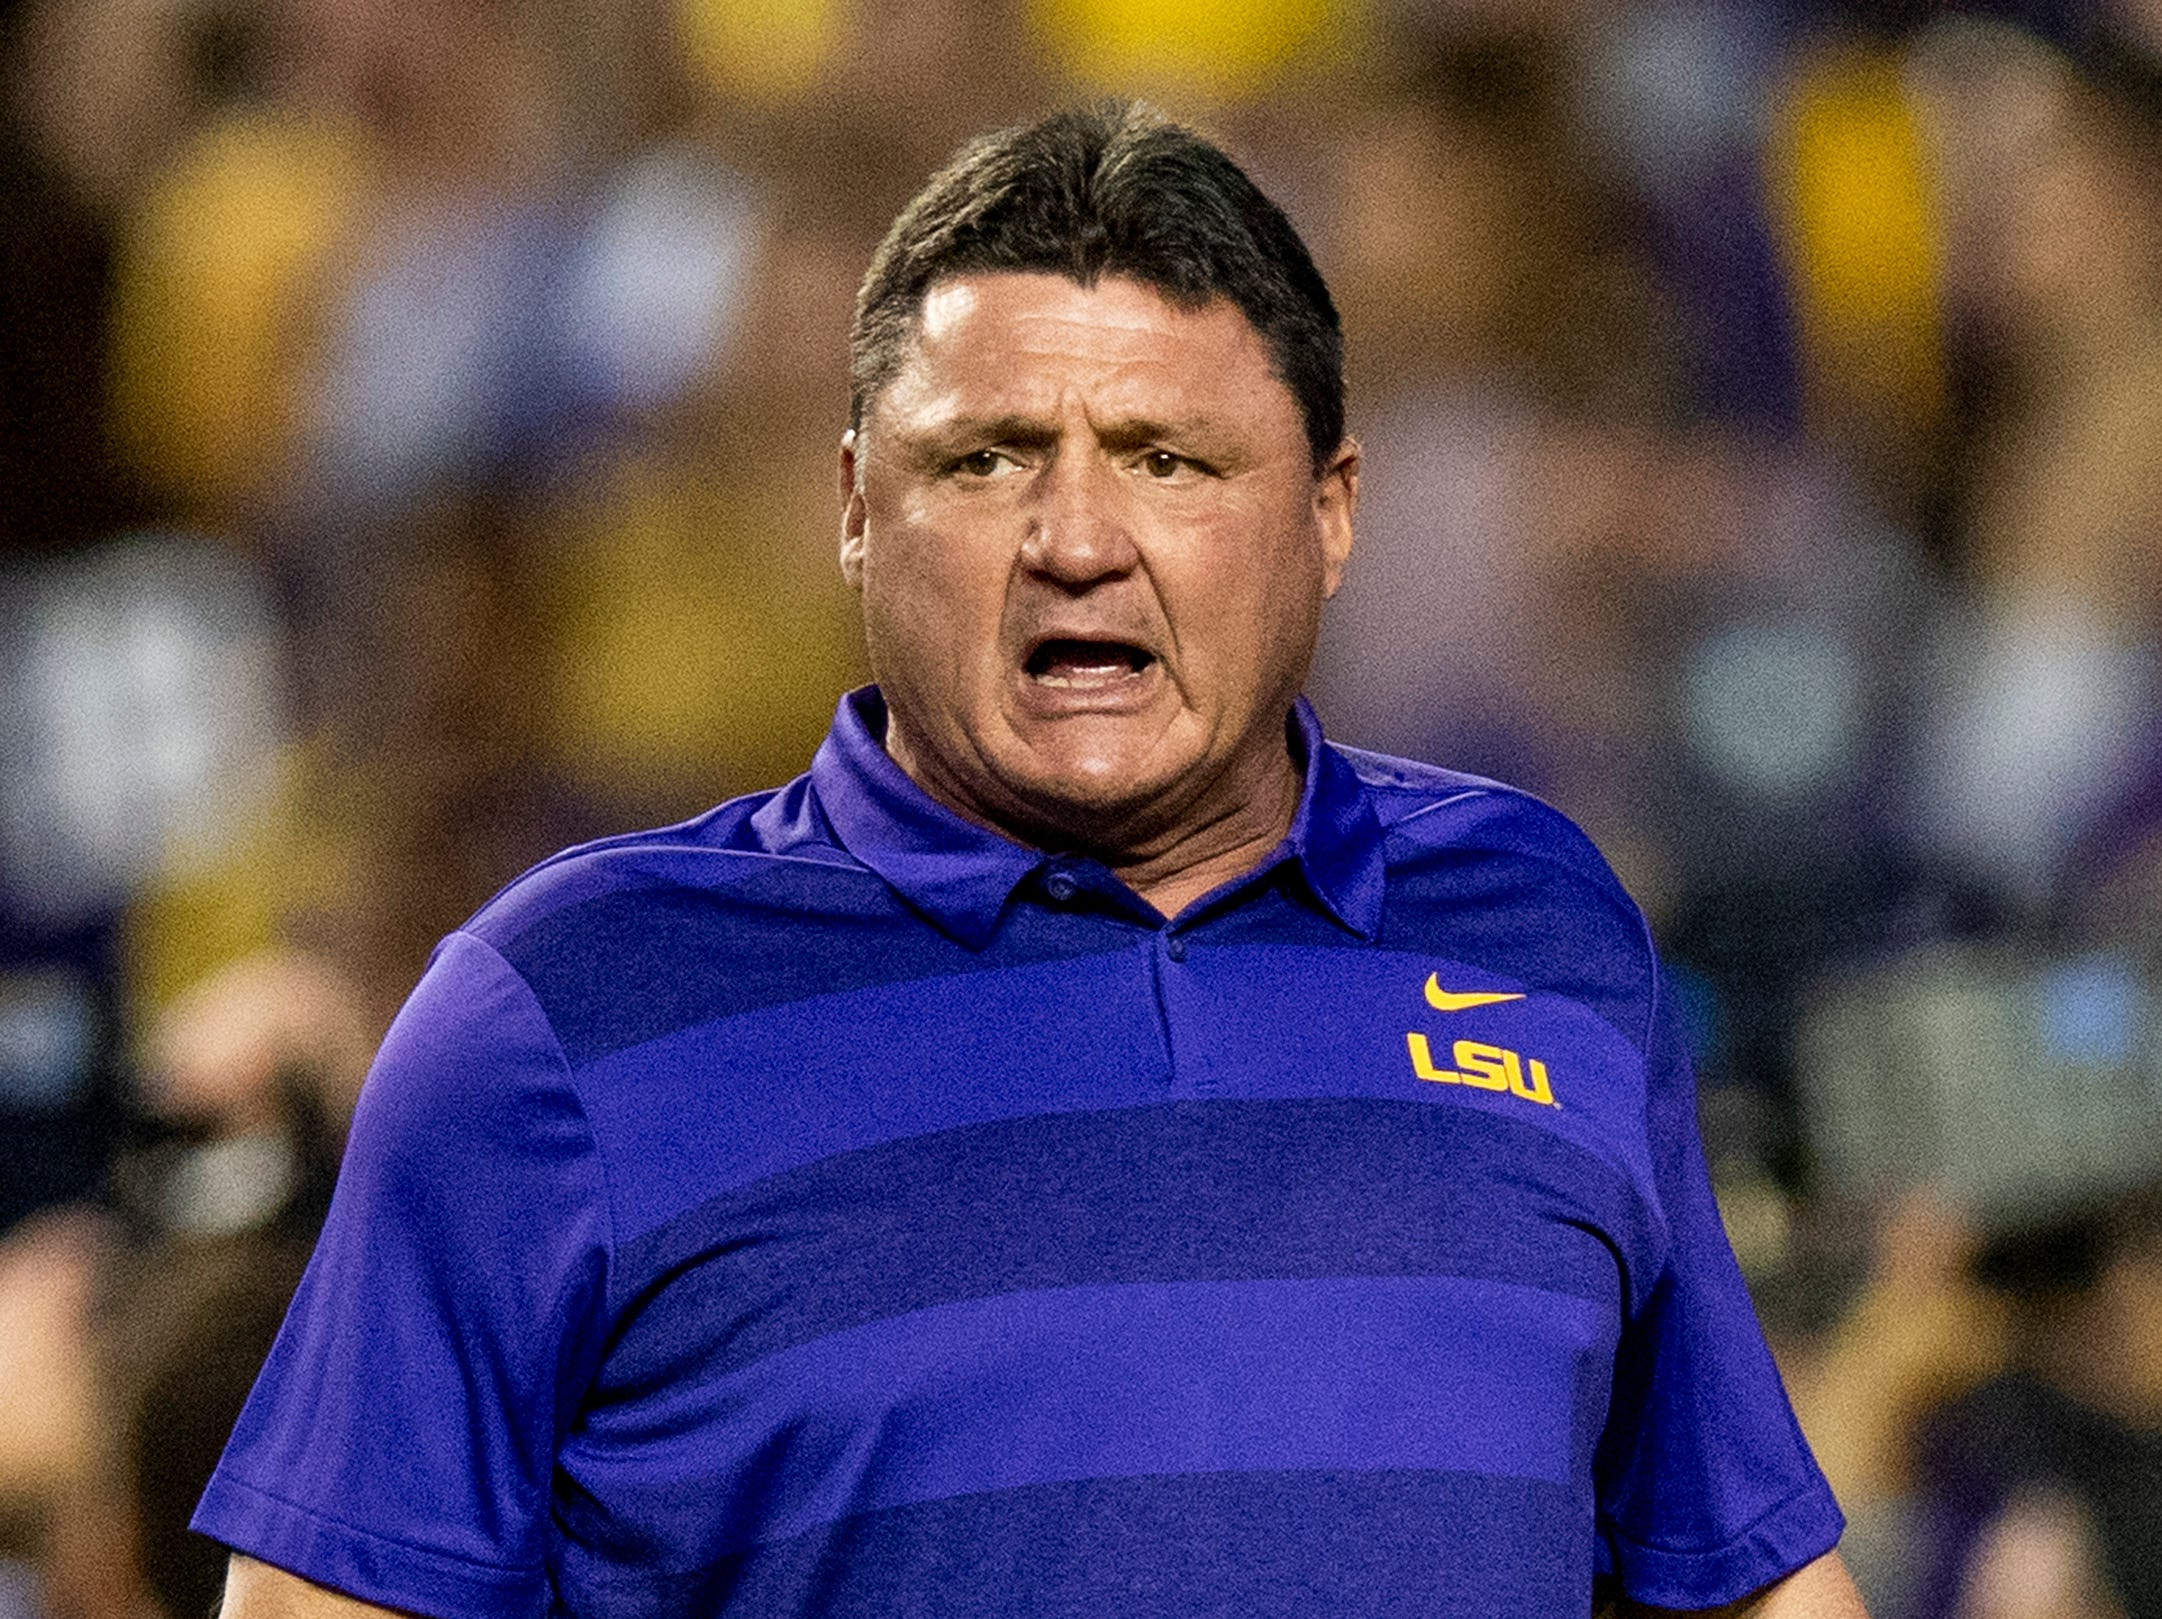 Louisiana State University head coach Ed Orgeron before the Alabama game at Tiger Stadium in Baton Rouge, La., on Saturday November 3, 2018.